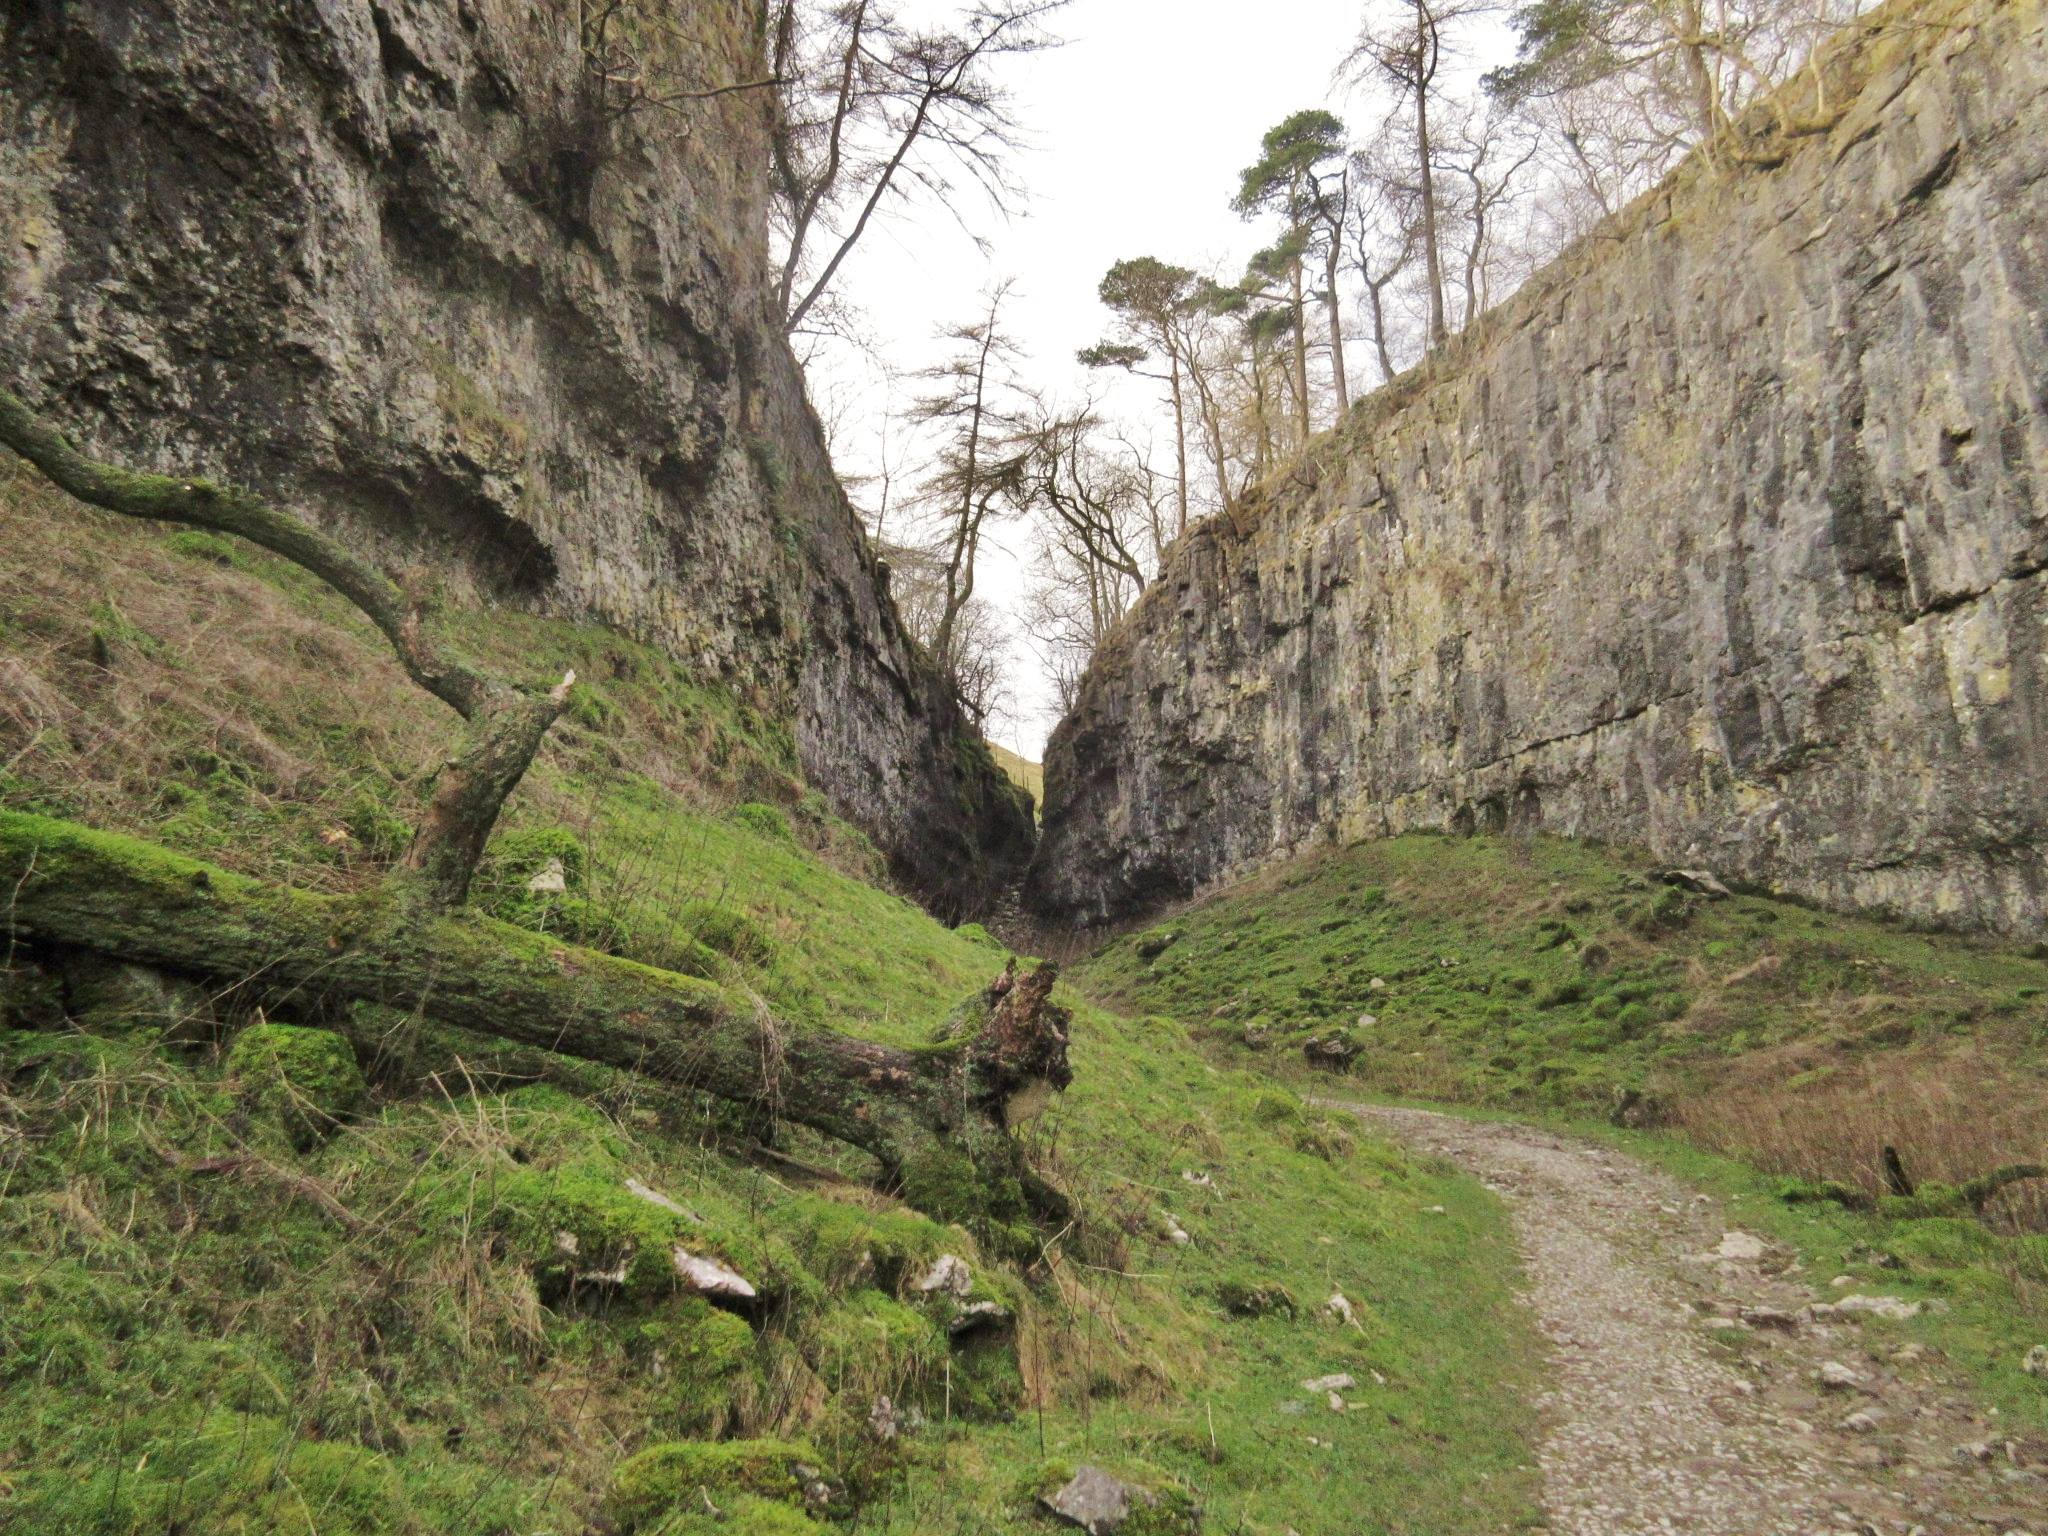 Inside Trow Gill, with the narrowing walls of limestone meeting the abandoned waterfall. Stephen Oldfield